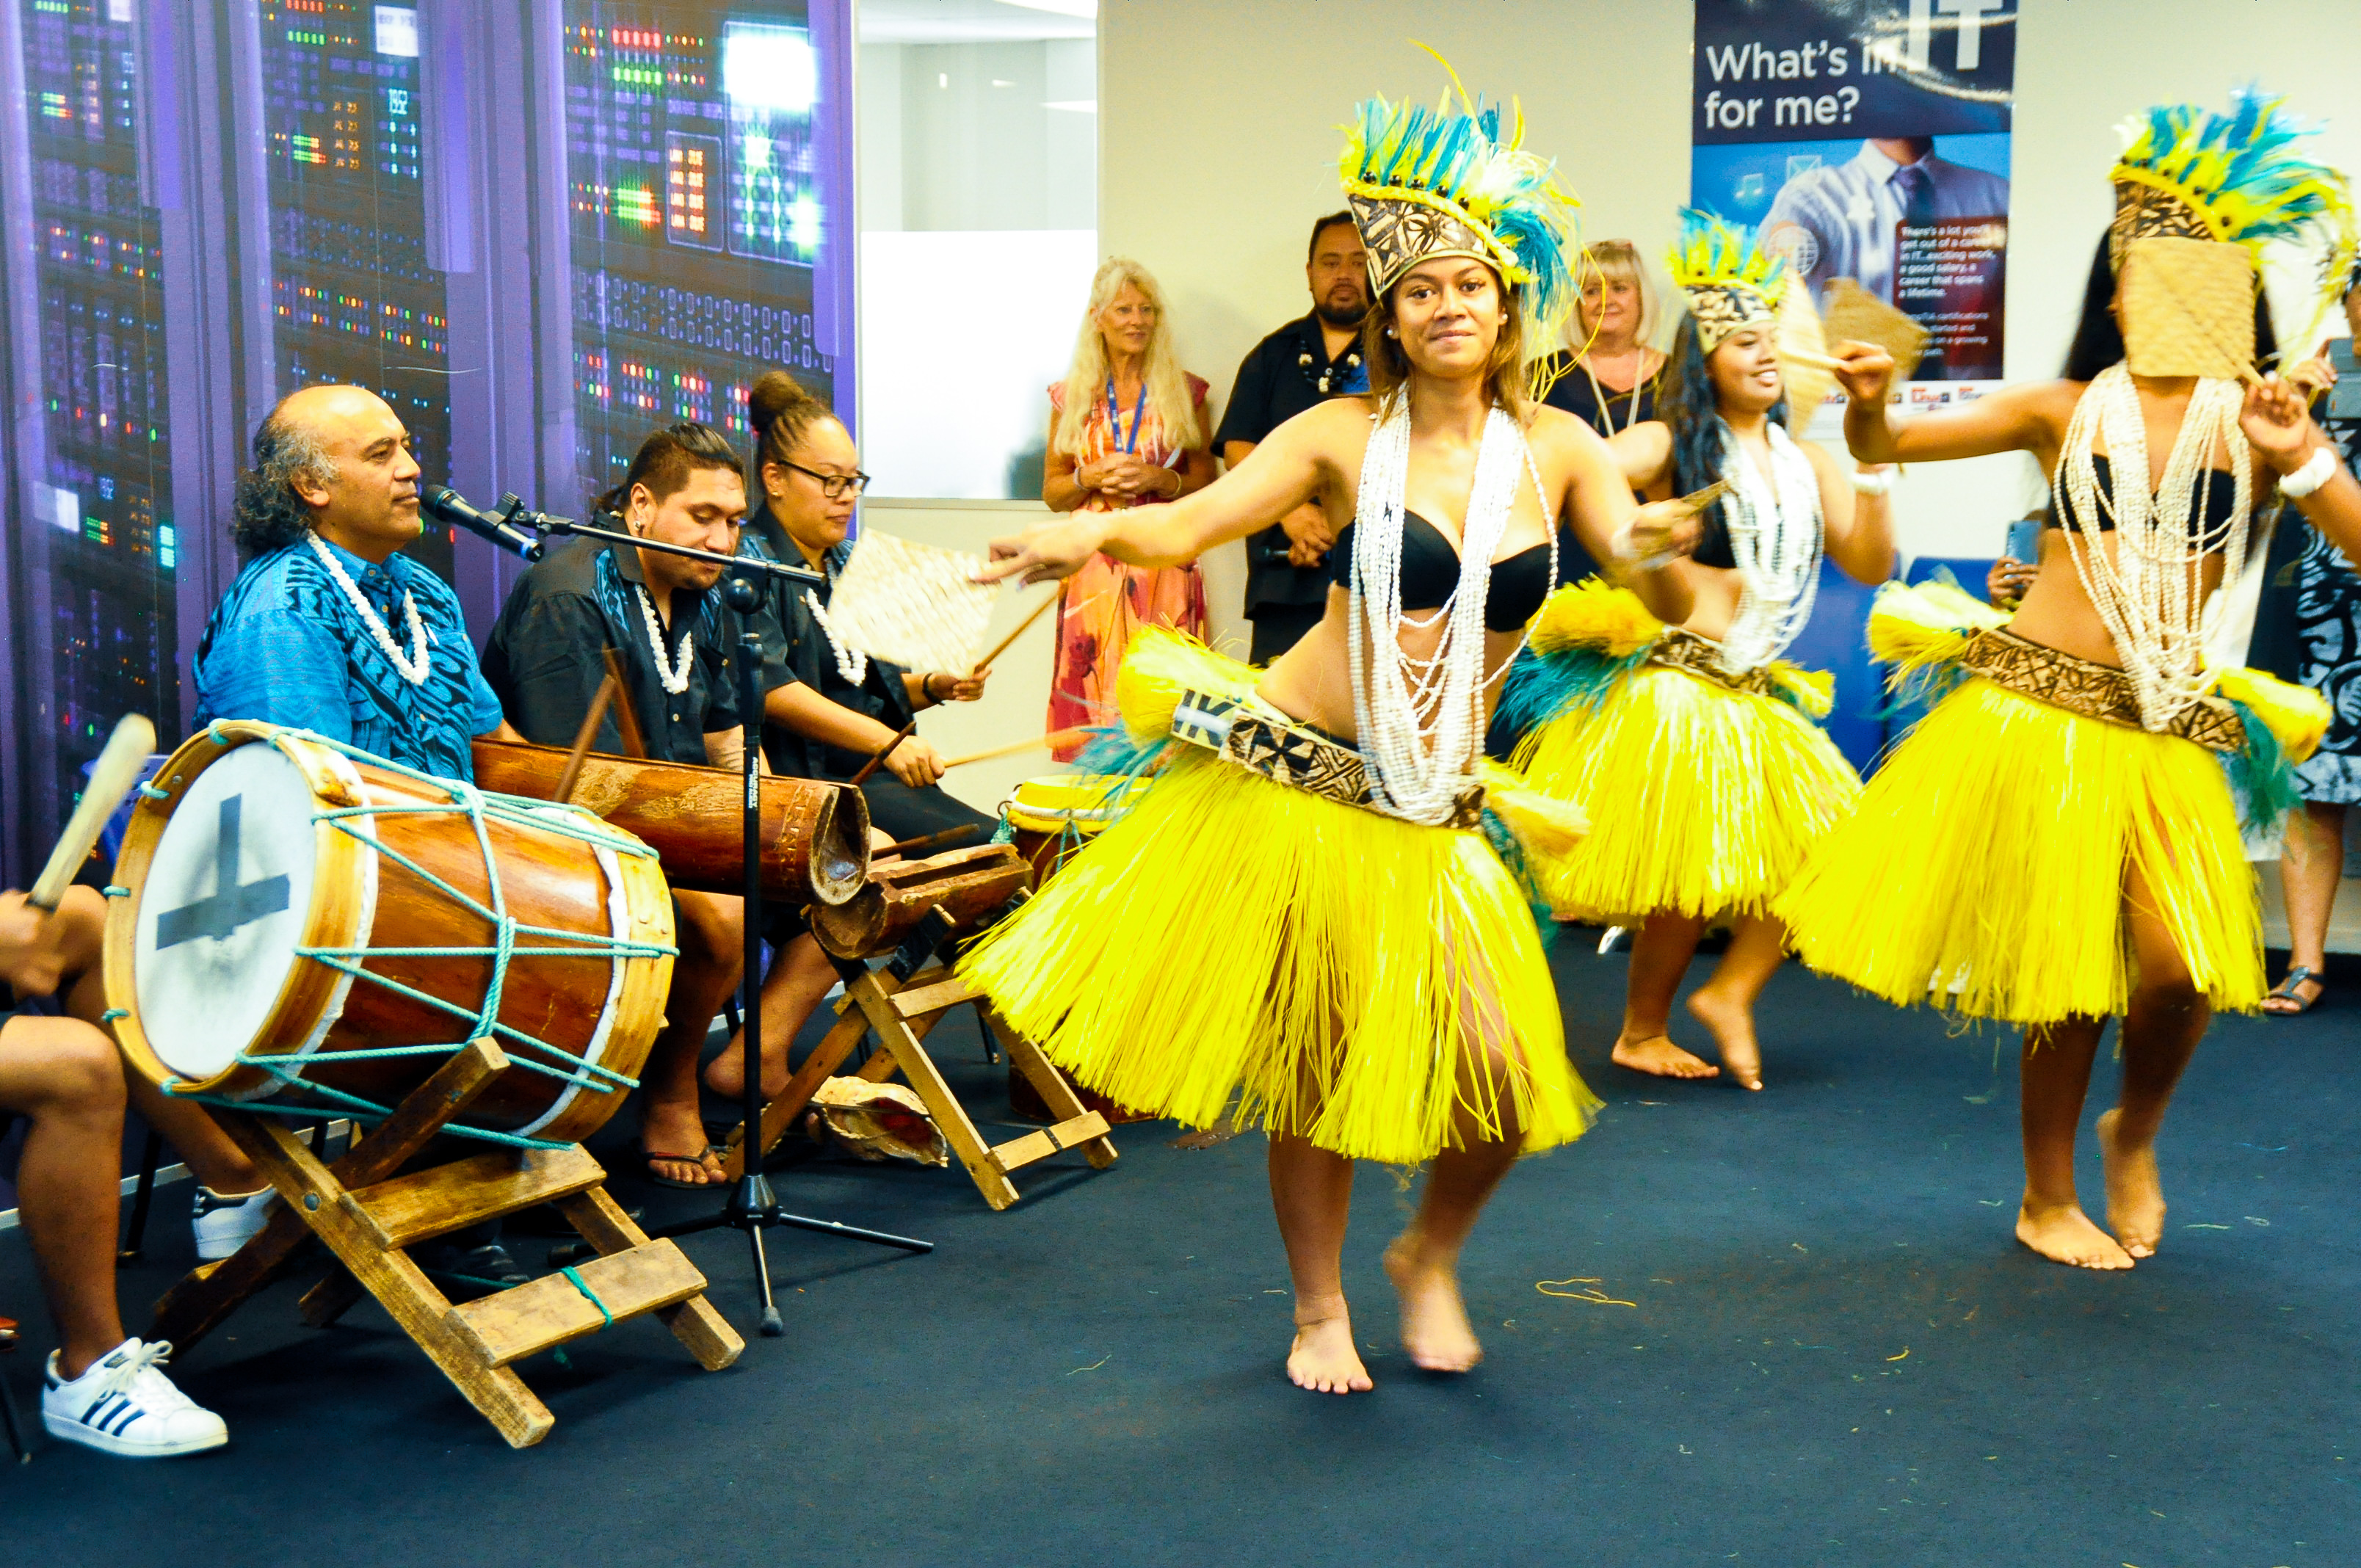 Techtorium cook island dancers performance